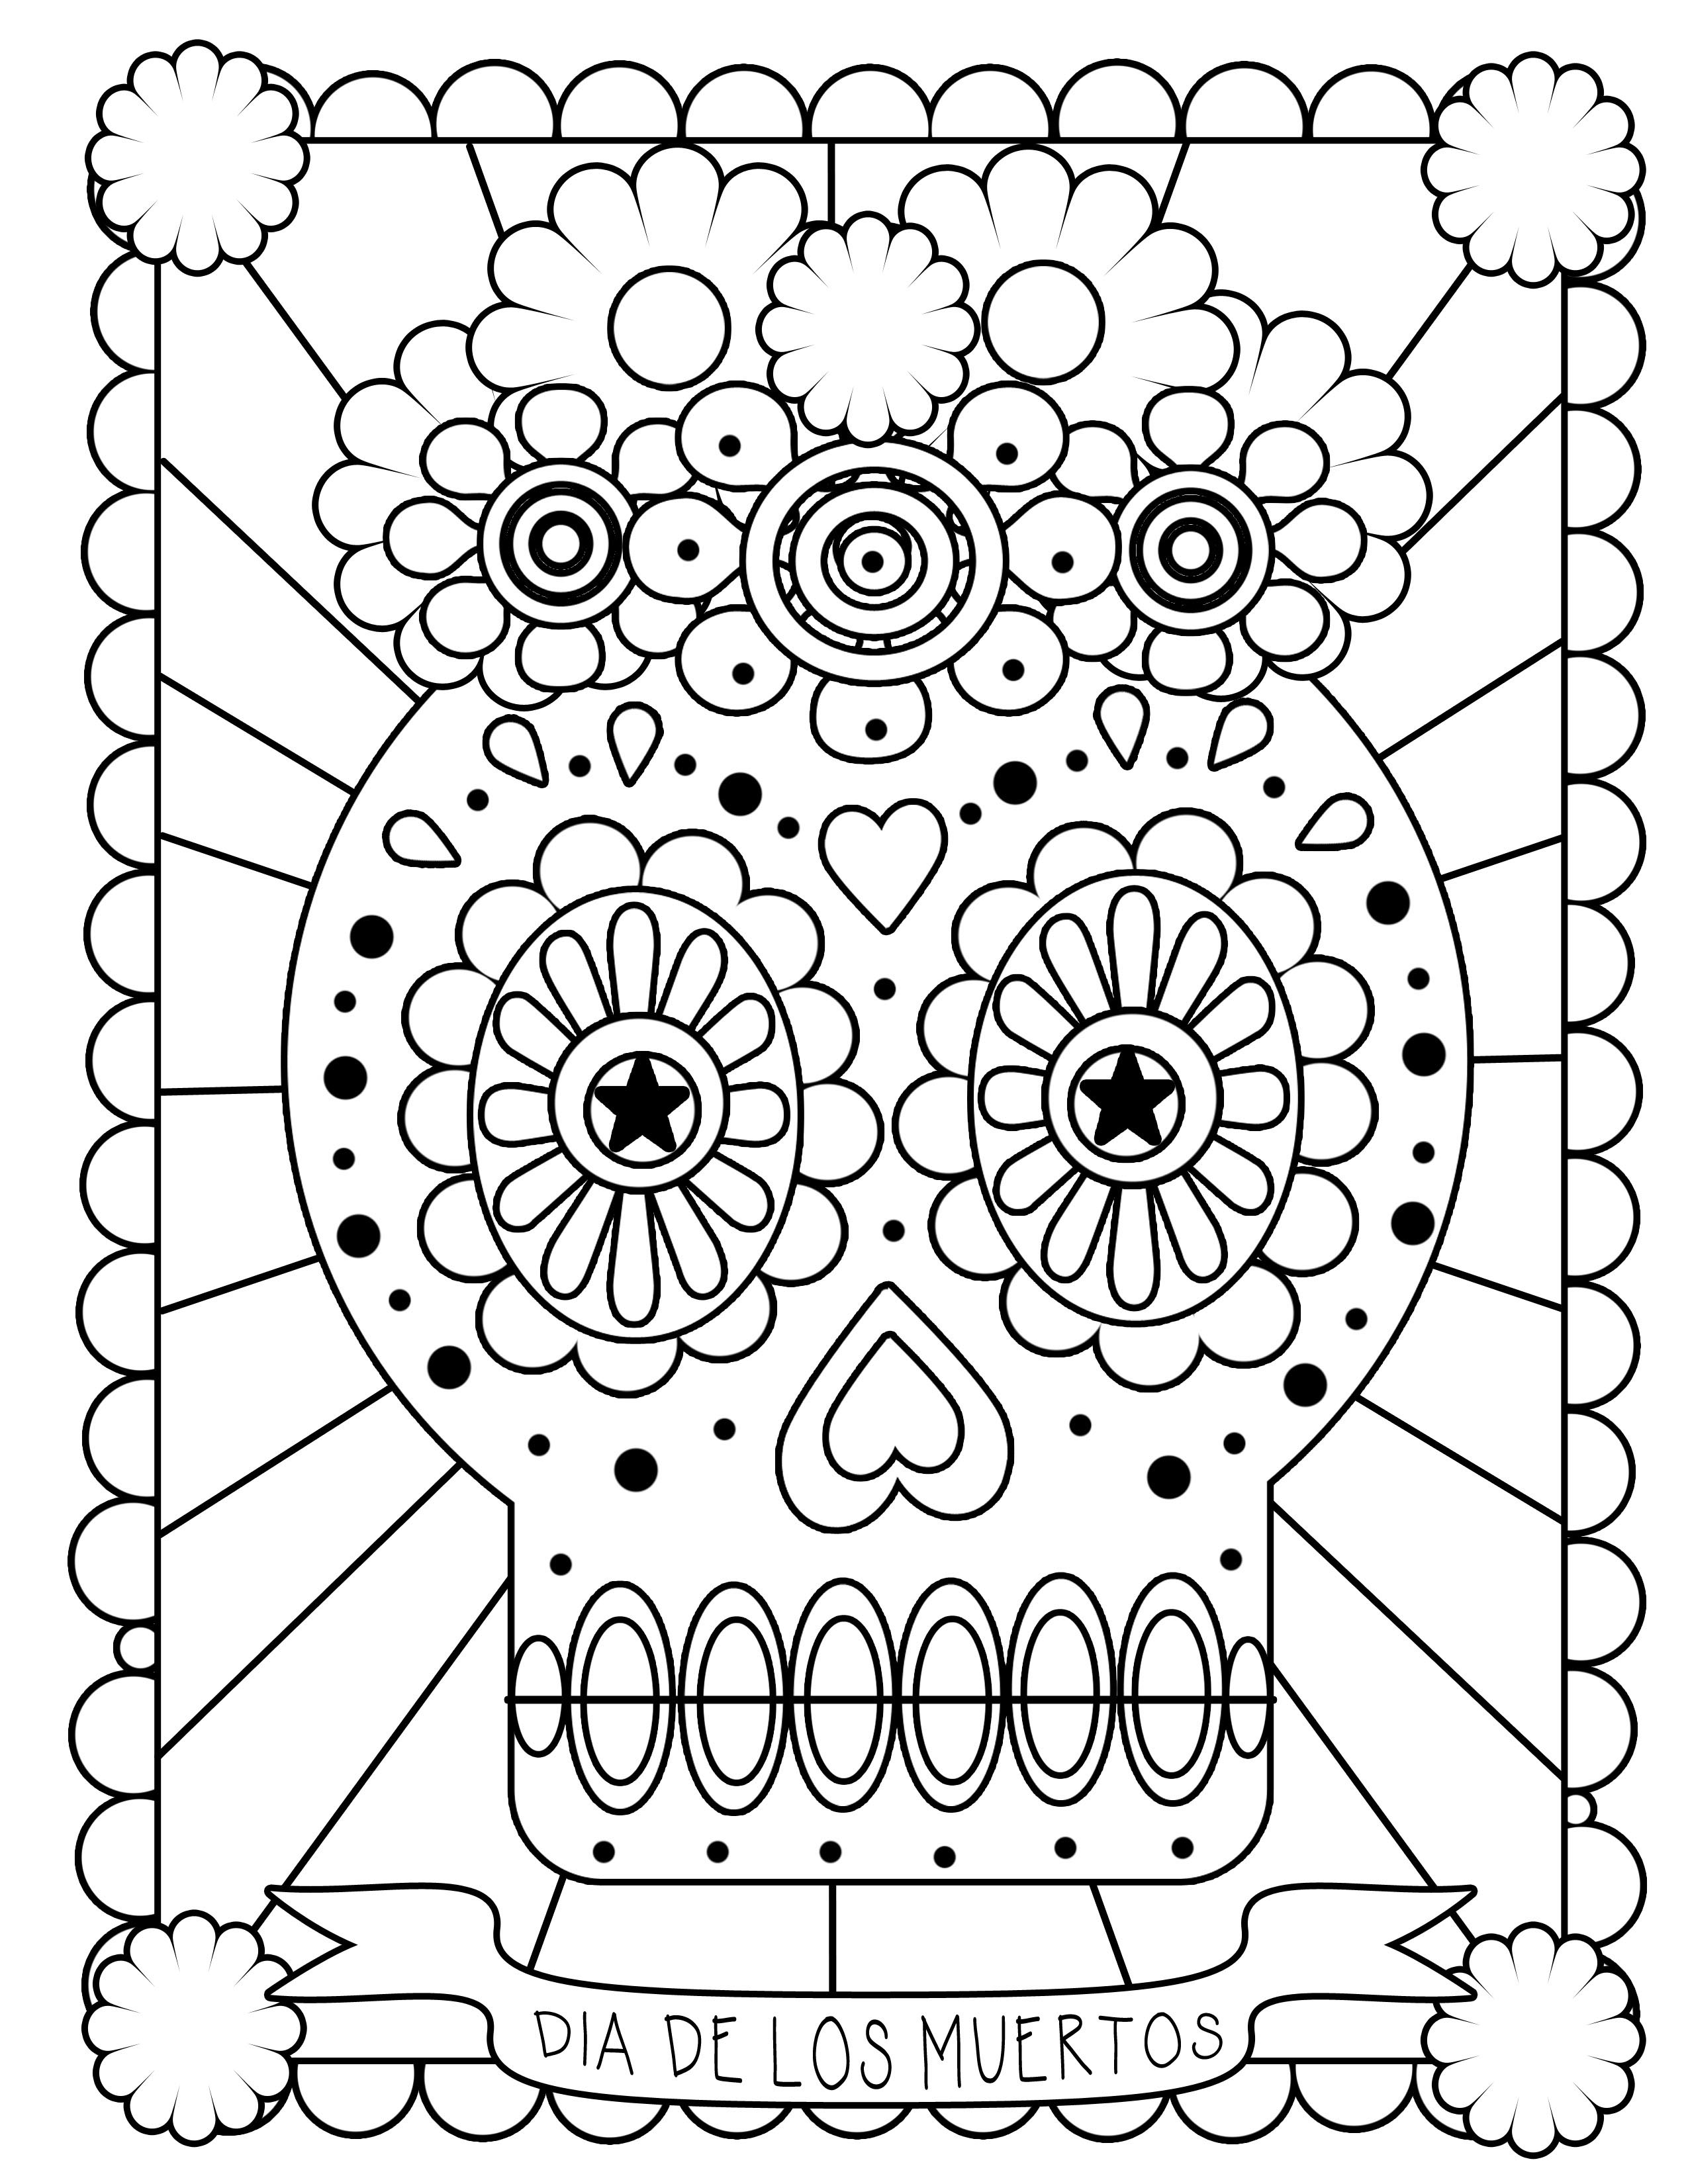 day of the dead coloring sheets items similar to day of the dead girl coloring page the coloring sheets day dead of